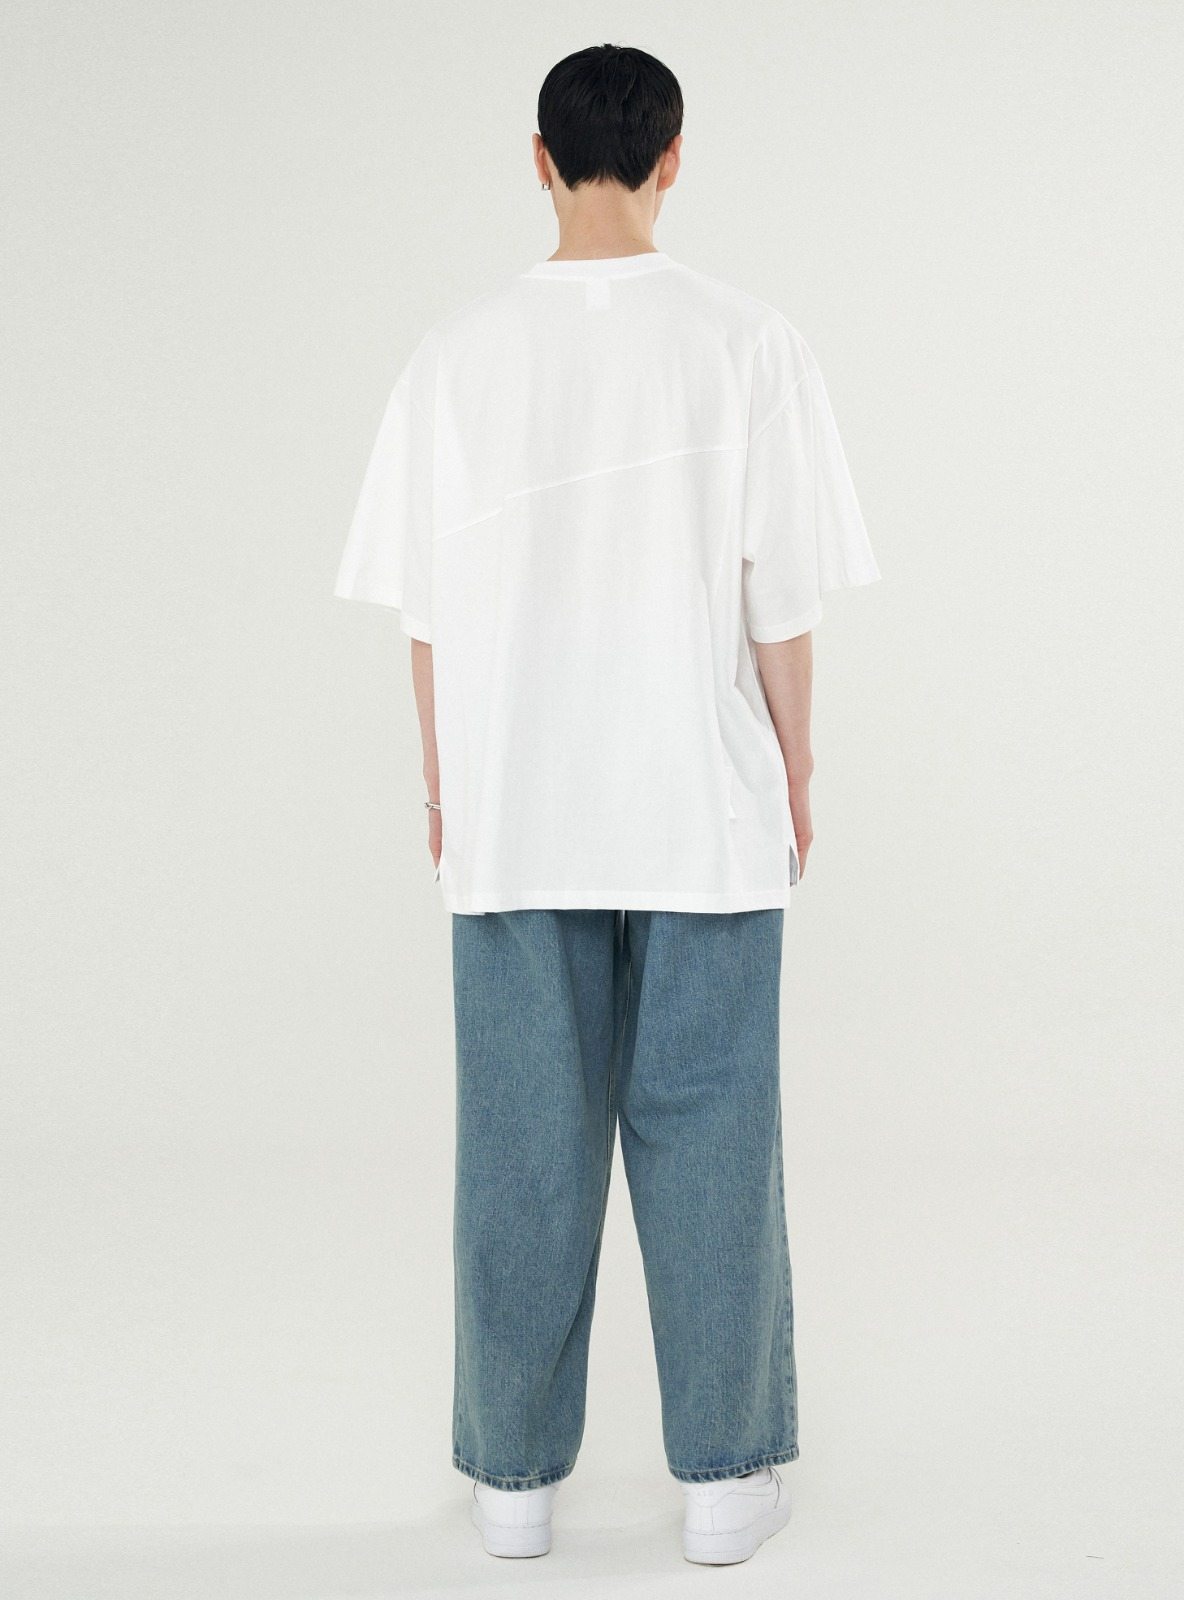 BACK SLIT AVANTGARDE TEE WHITE